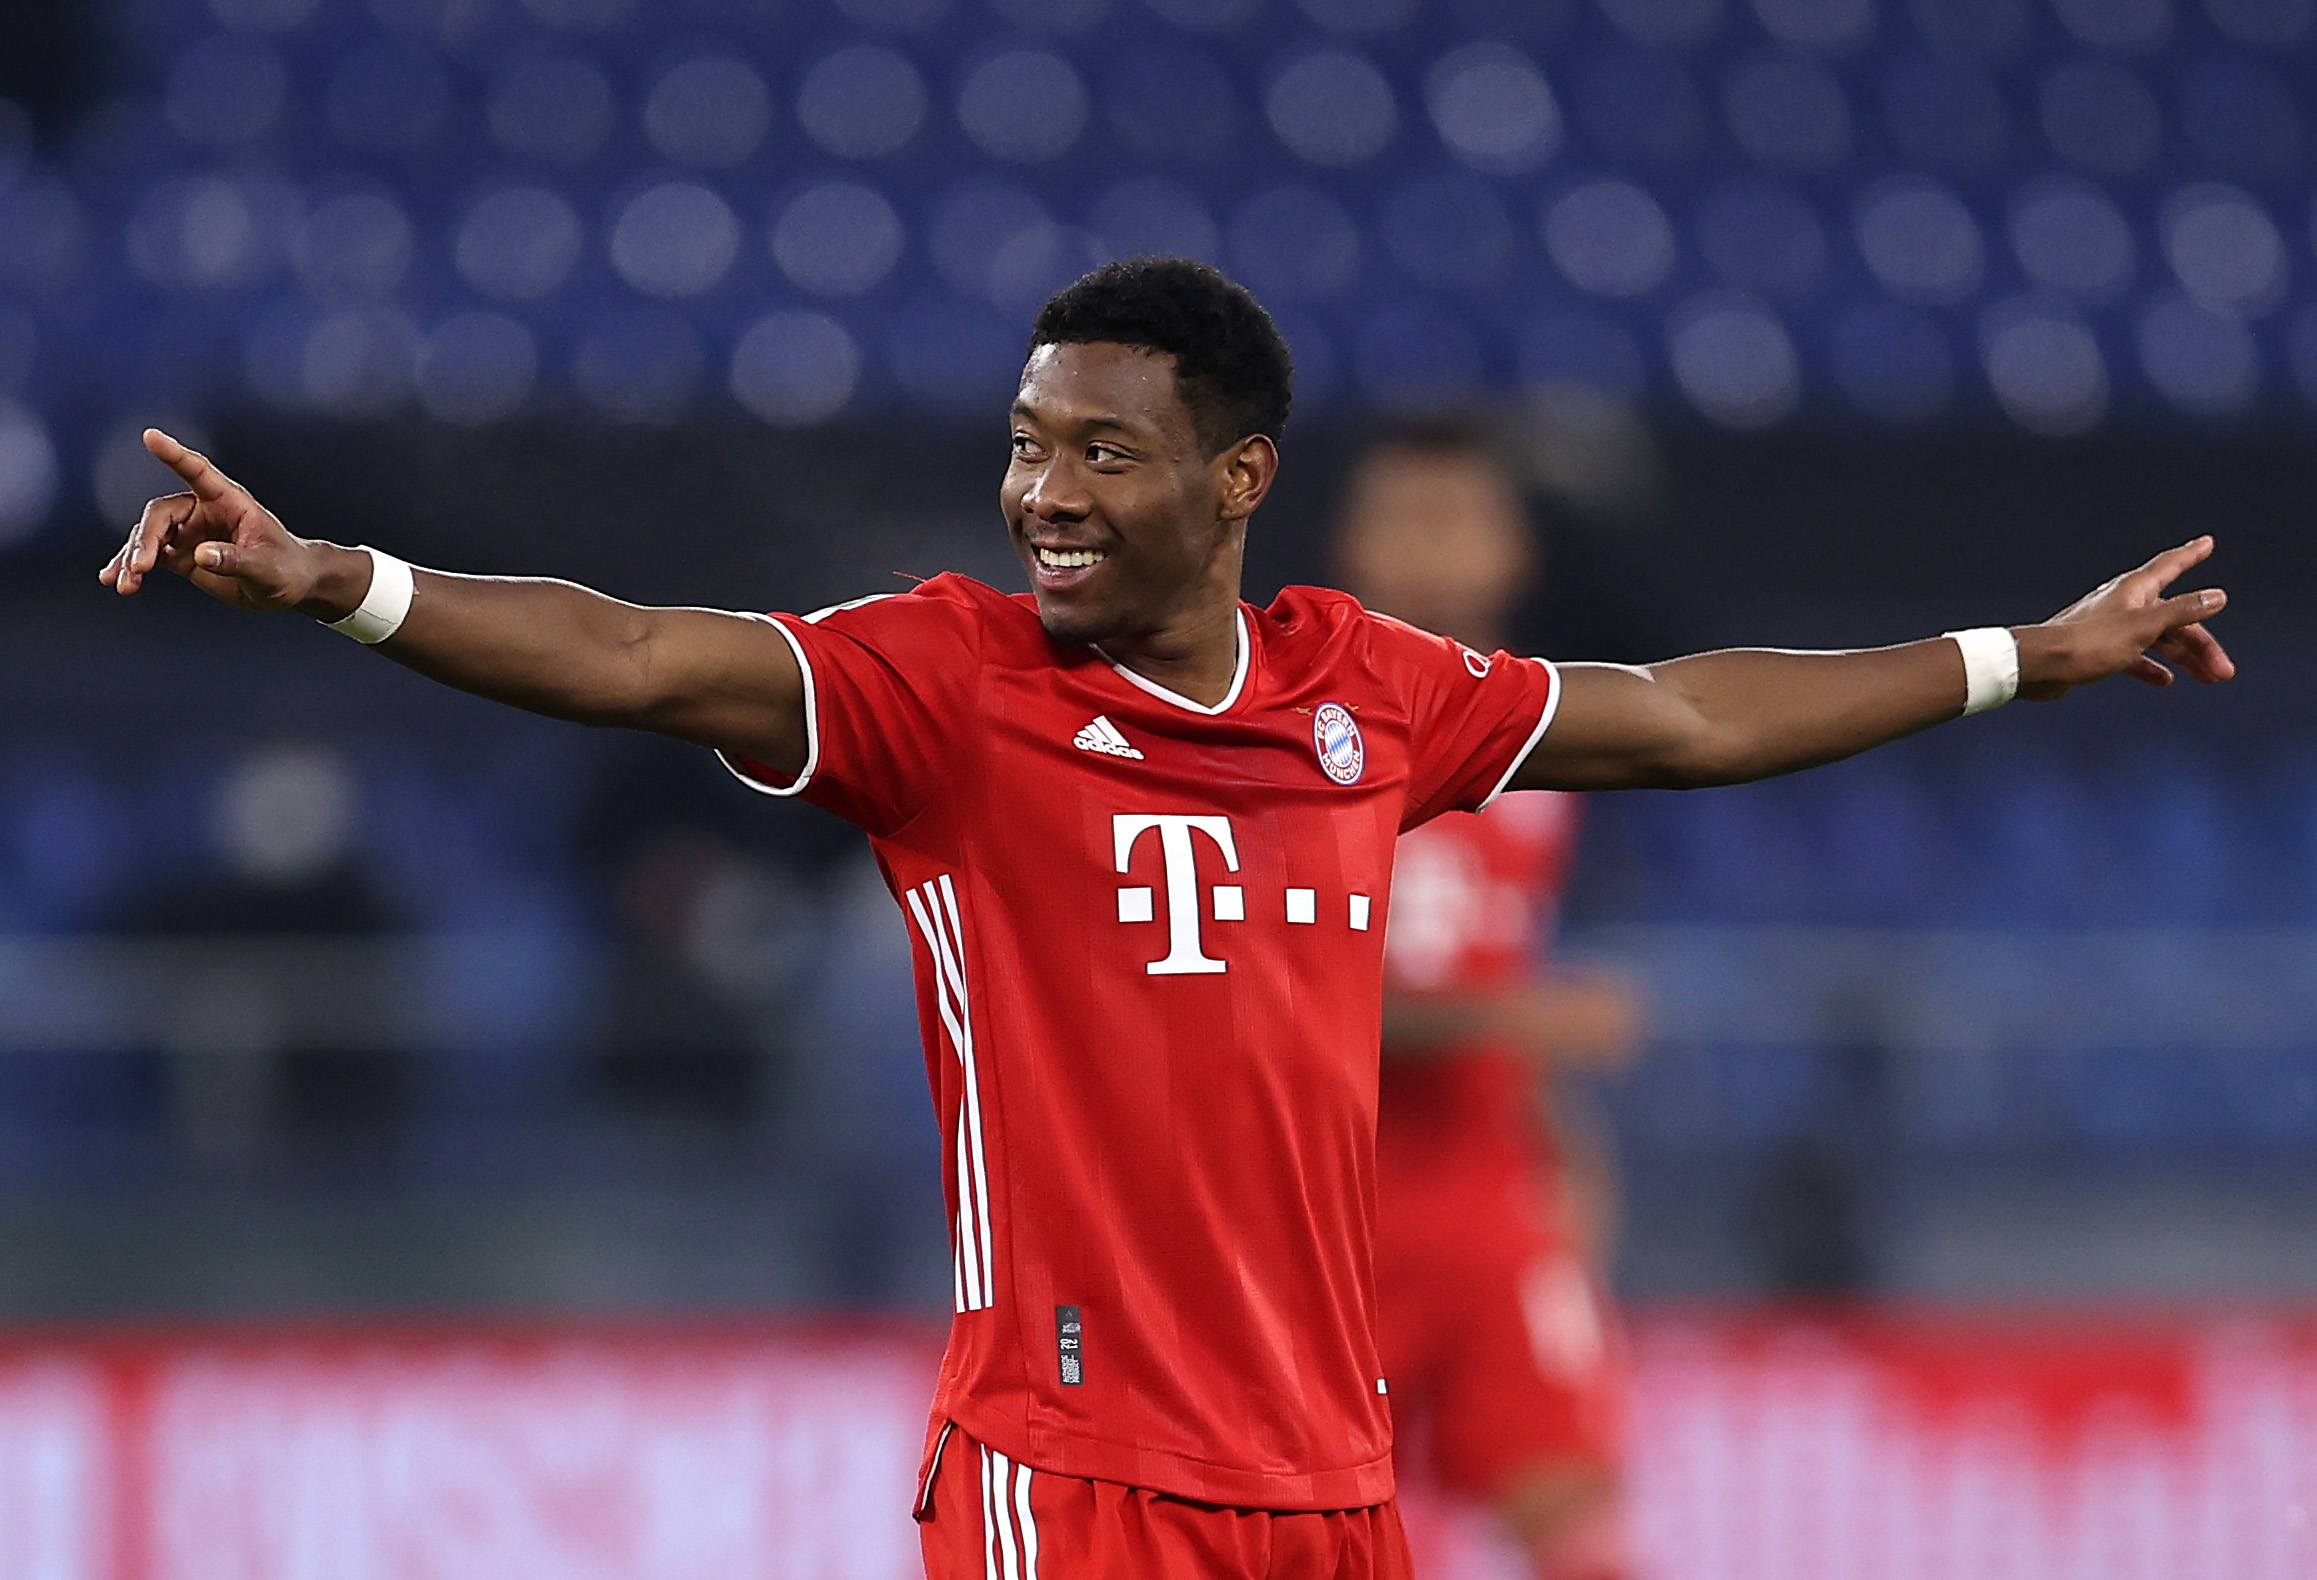 Manchester City among several clubs in the running for Alaba who is seen in the picture